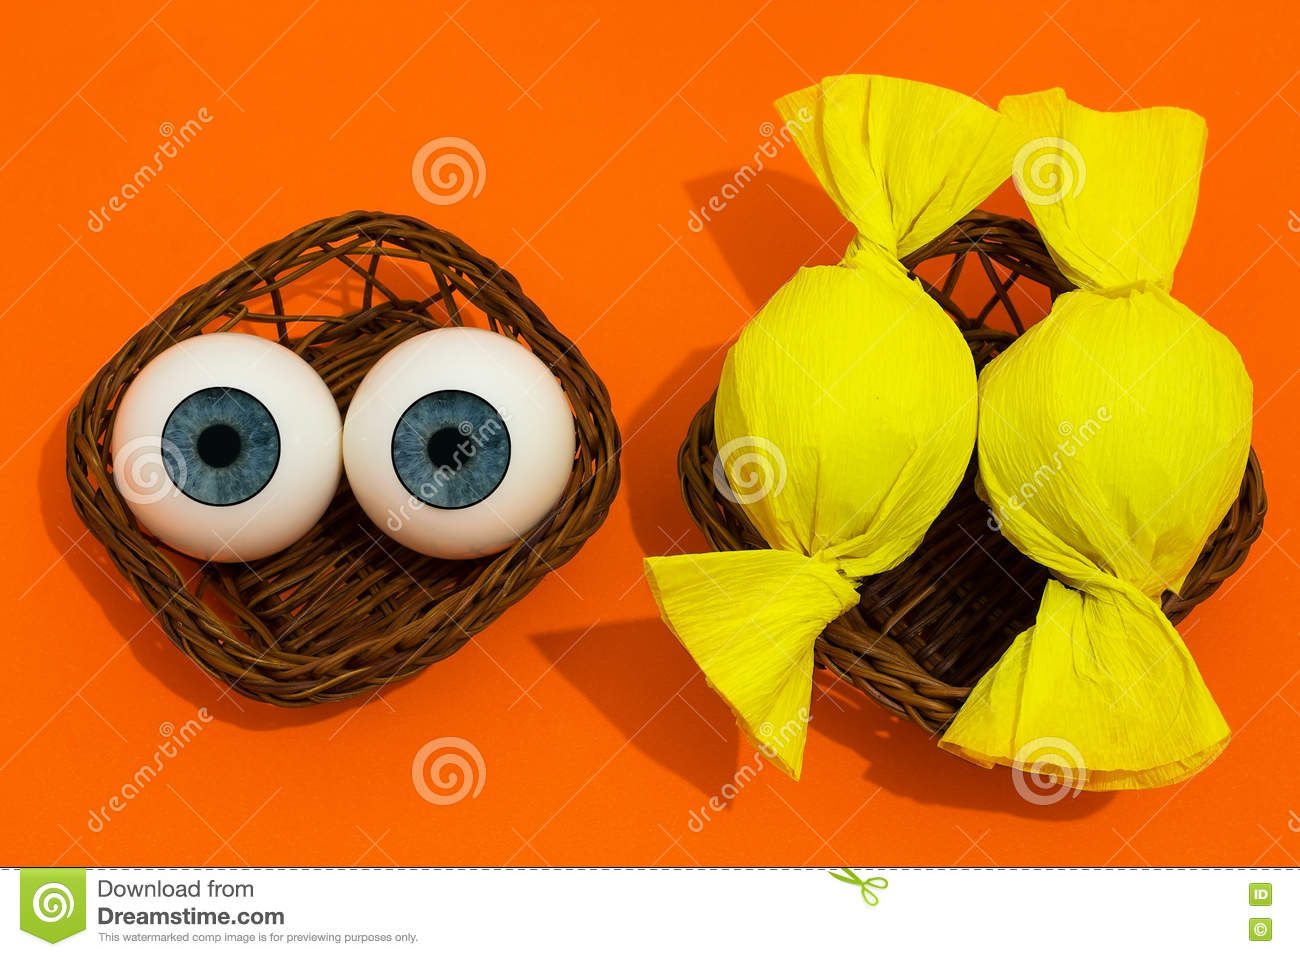 Eye Balls And Candy In Baskets Stock Photo - Image: 75241770